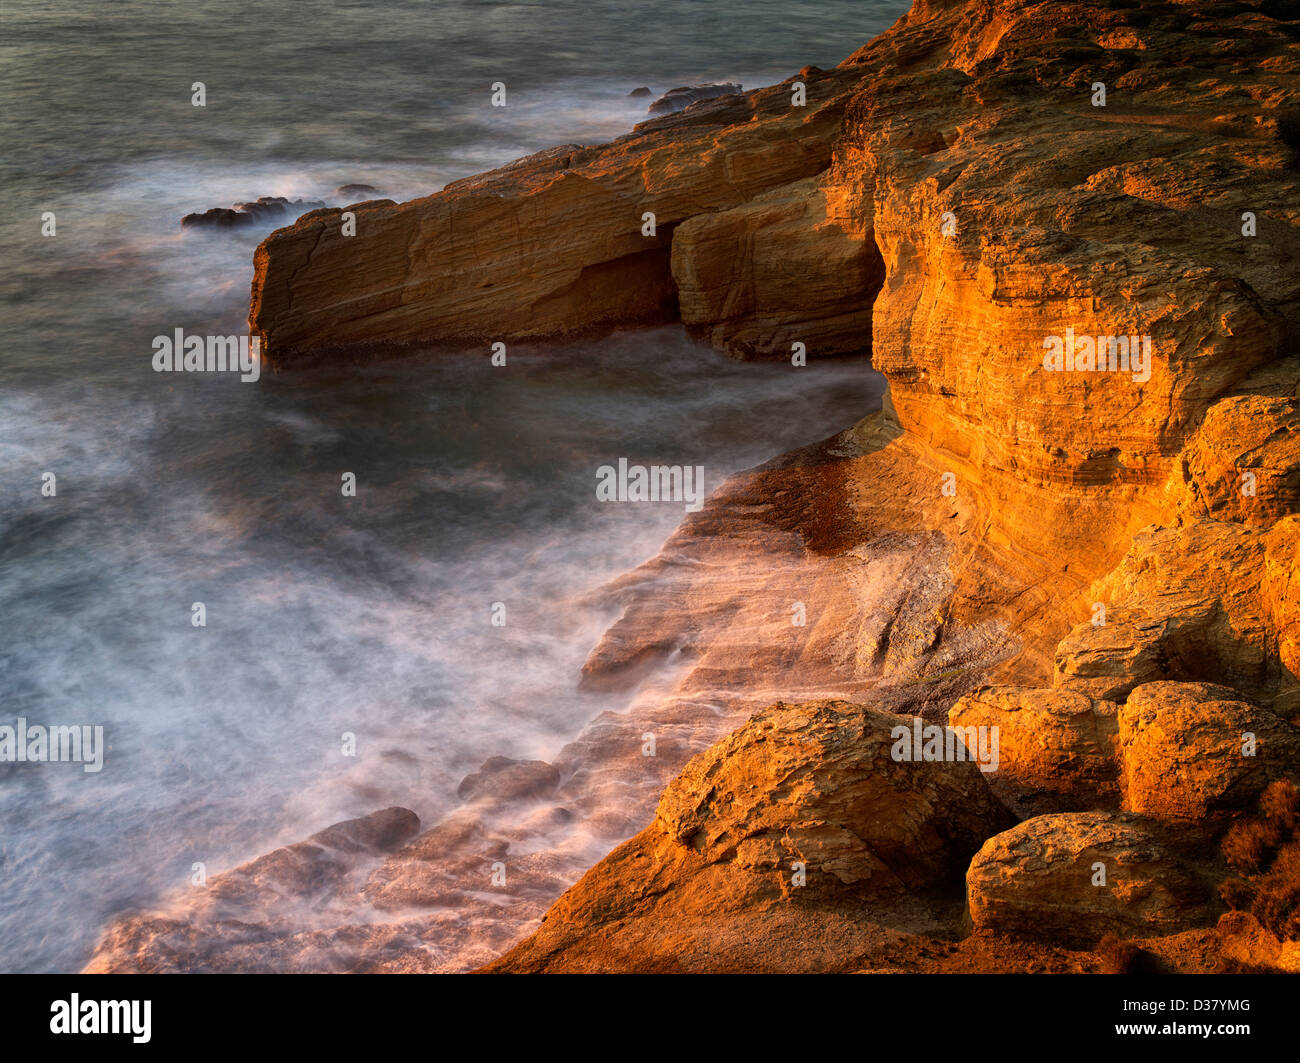 Rock formation and waves at Devil's Punchbowl, Oregon - Stock Image